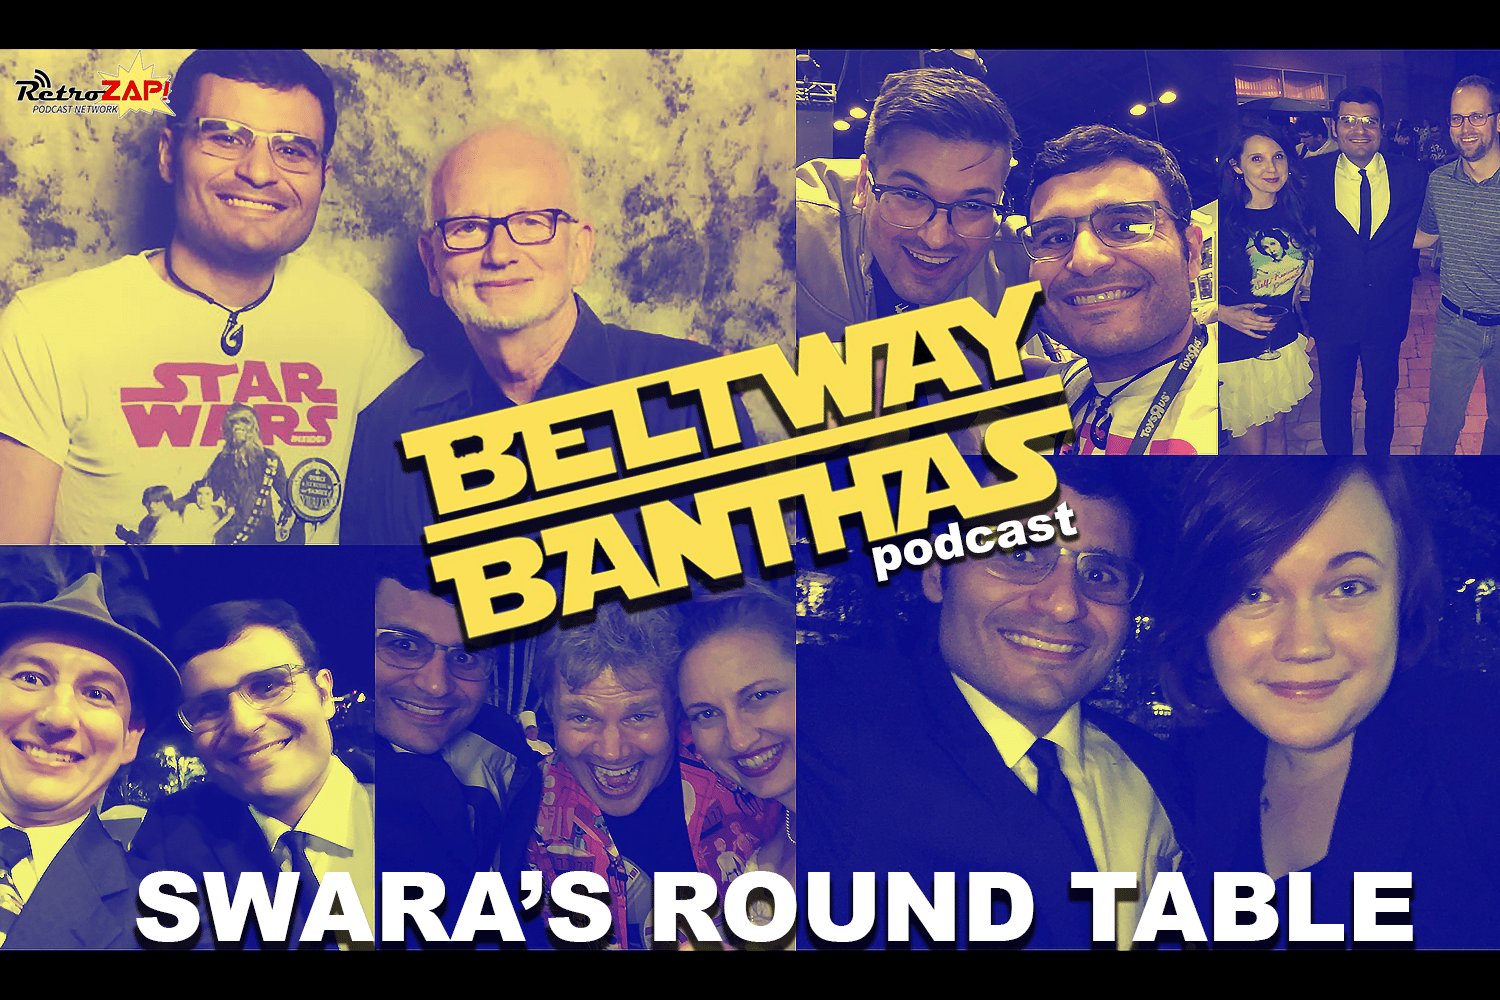 Beltway Banthas Special: Swara's Round Table (Live from Star Wars Celebration)